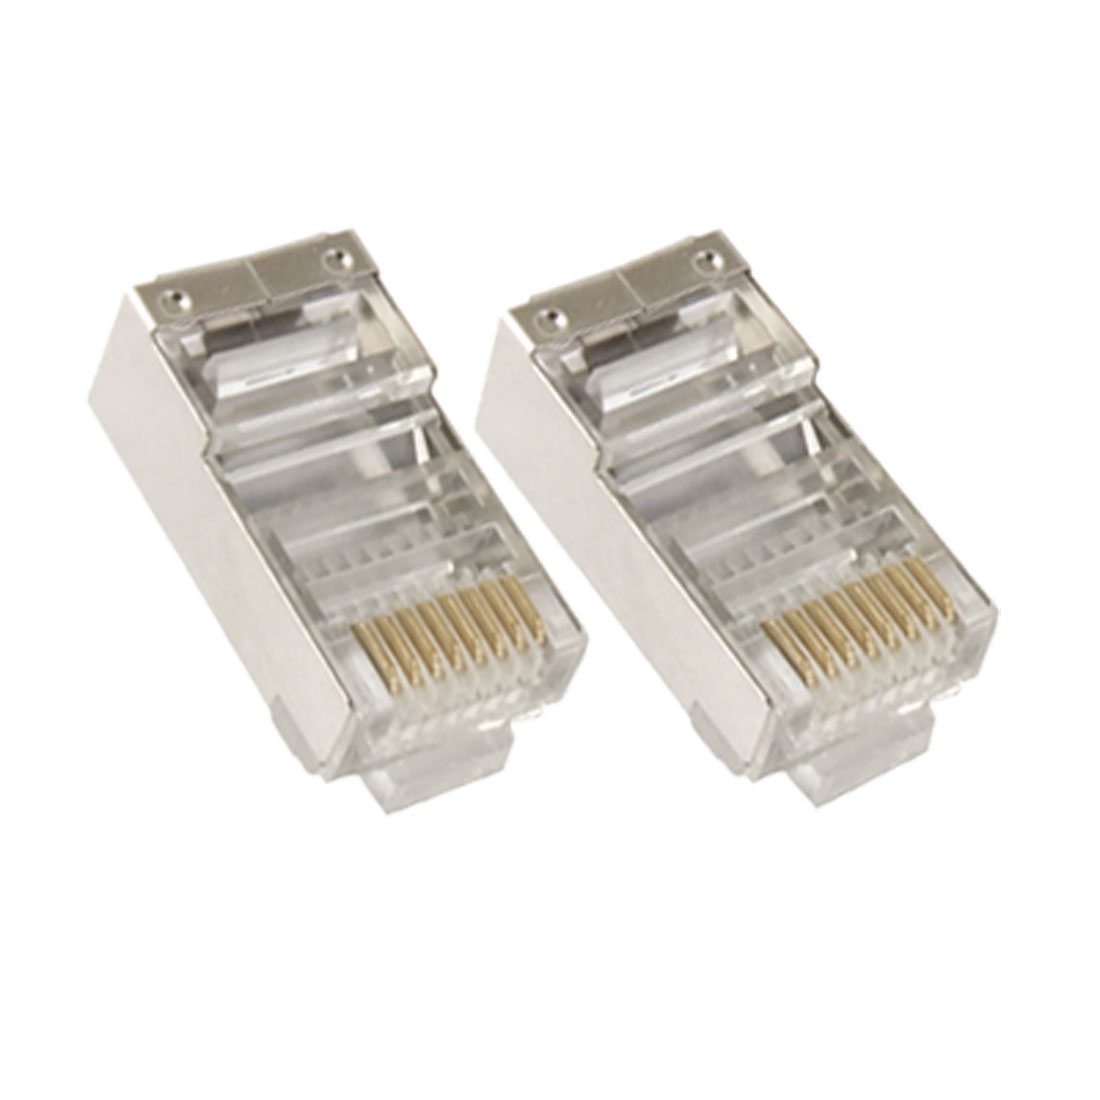 Plastic 2 Pcs Network Ethernet 8P8C 8 Pin RJ45 Shielded Connector Jacks